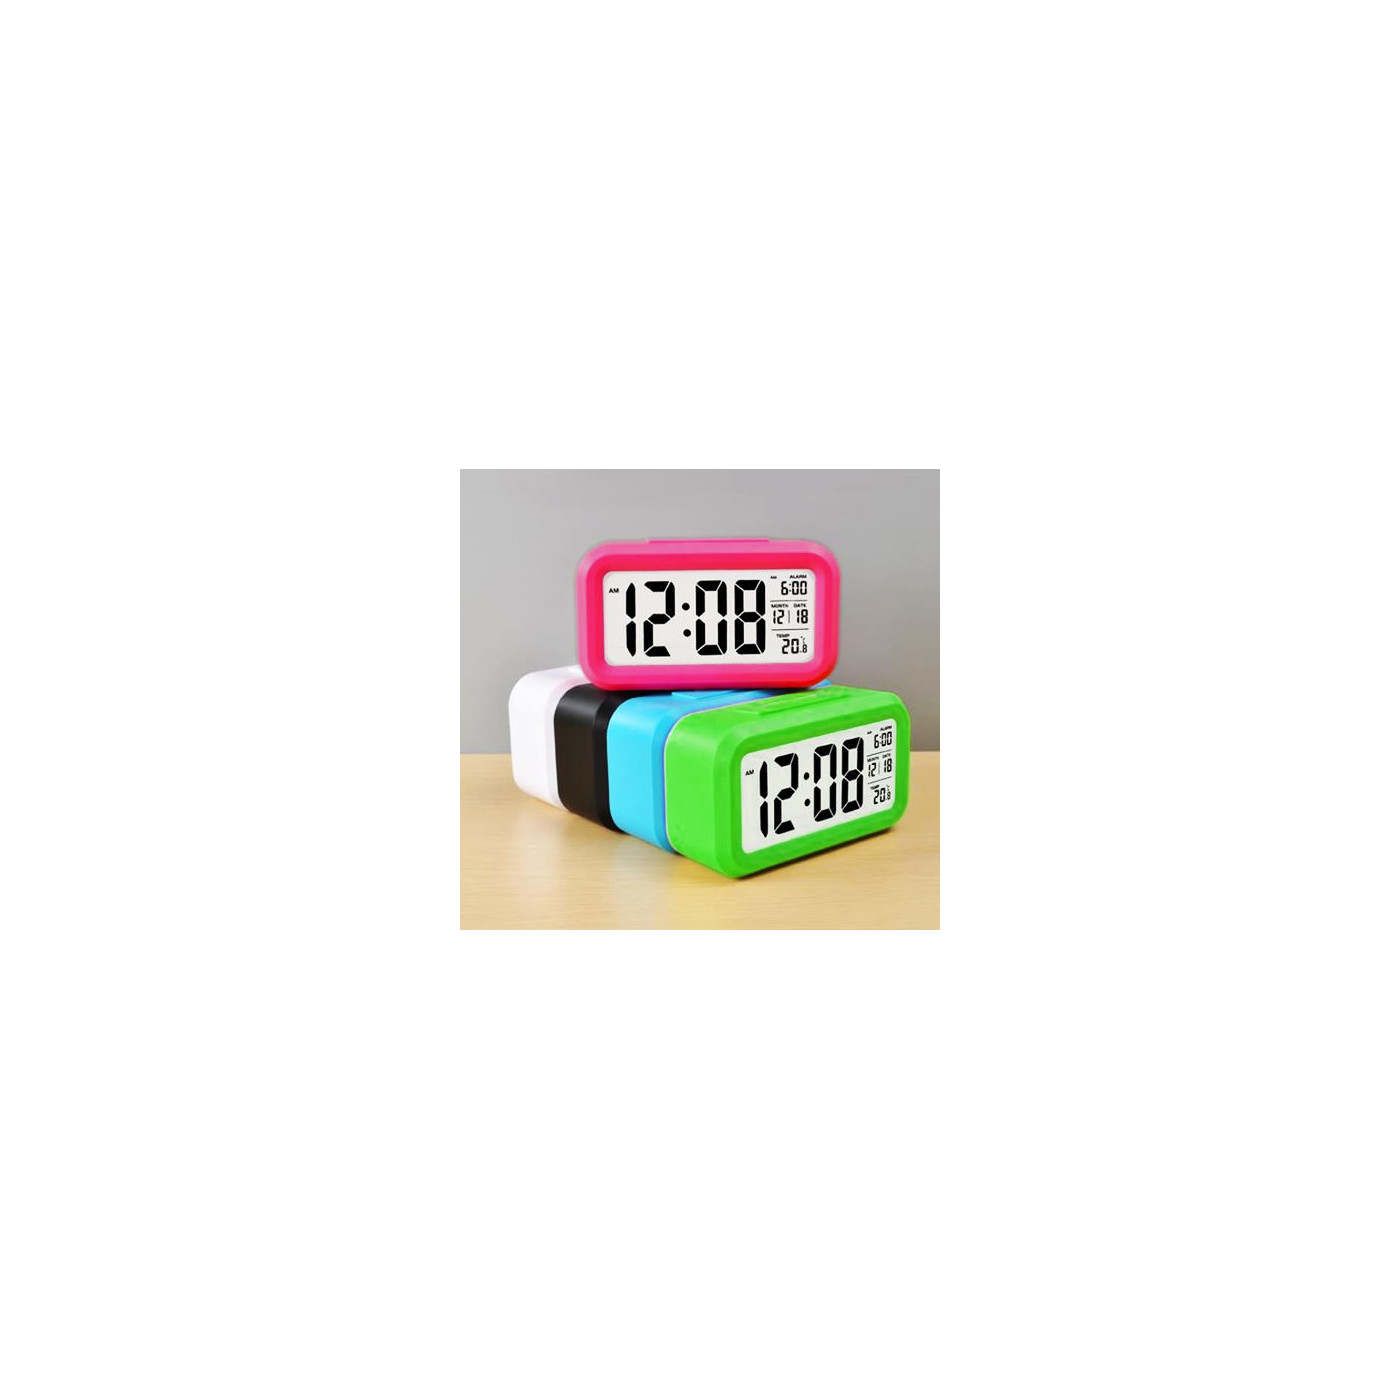 Clock with alarm in cheerful color: black